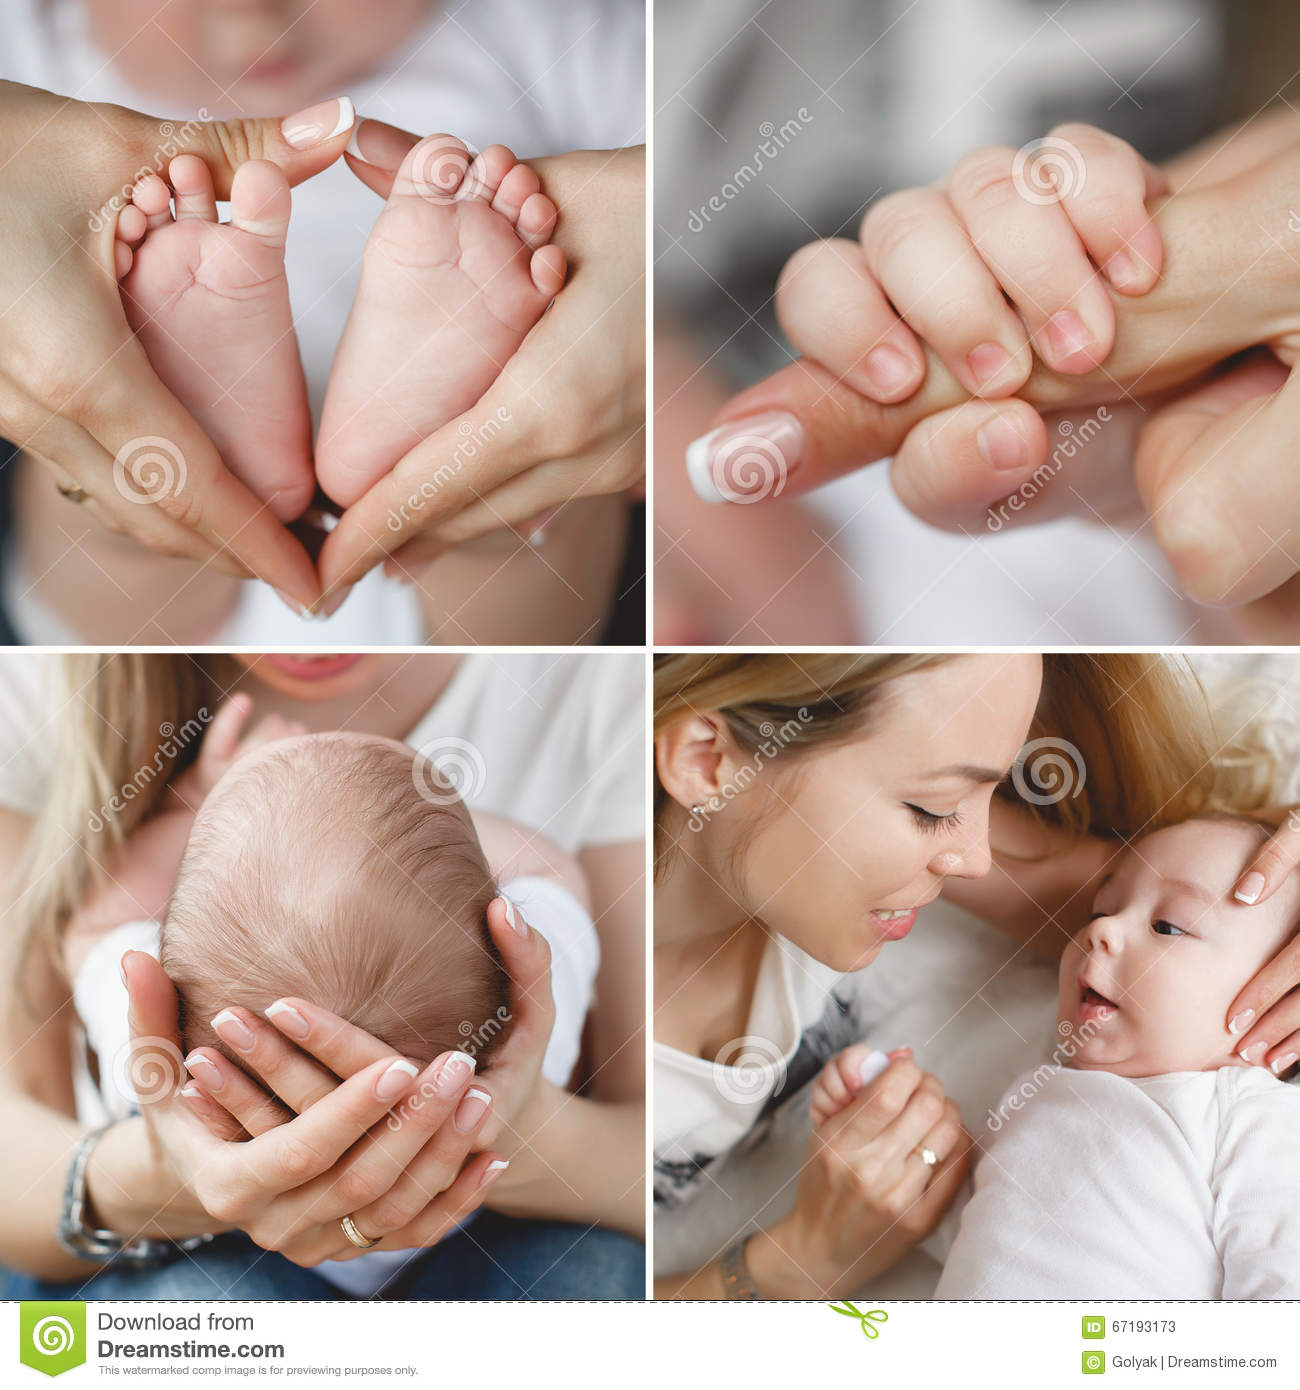 Newborn Baby Collage Stock Photos, Images, & Pictures - 461 Images